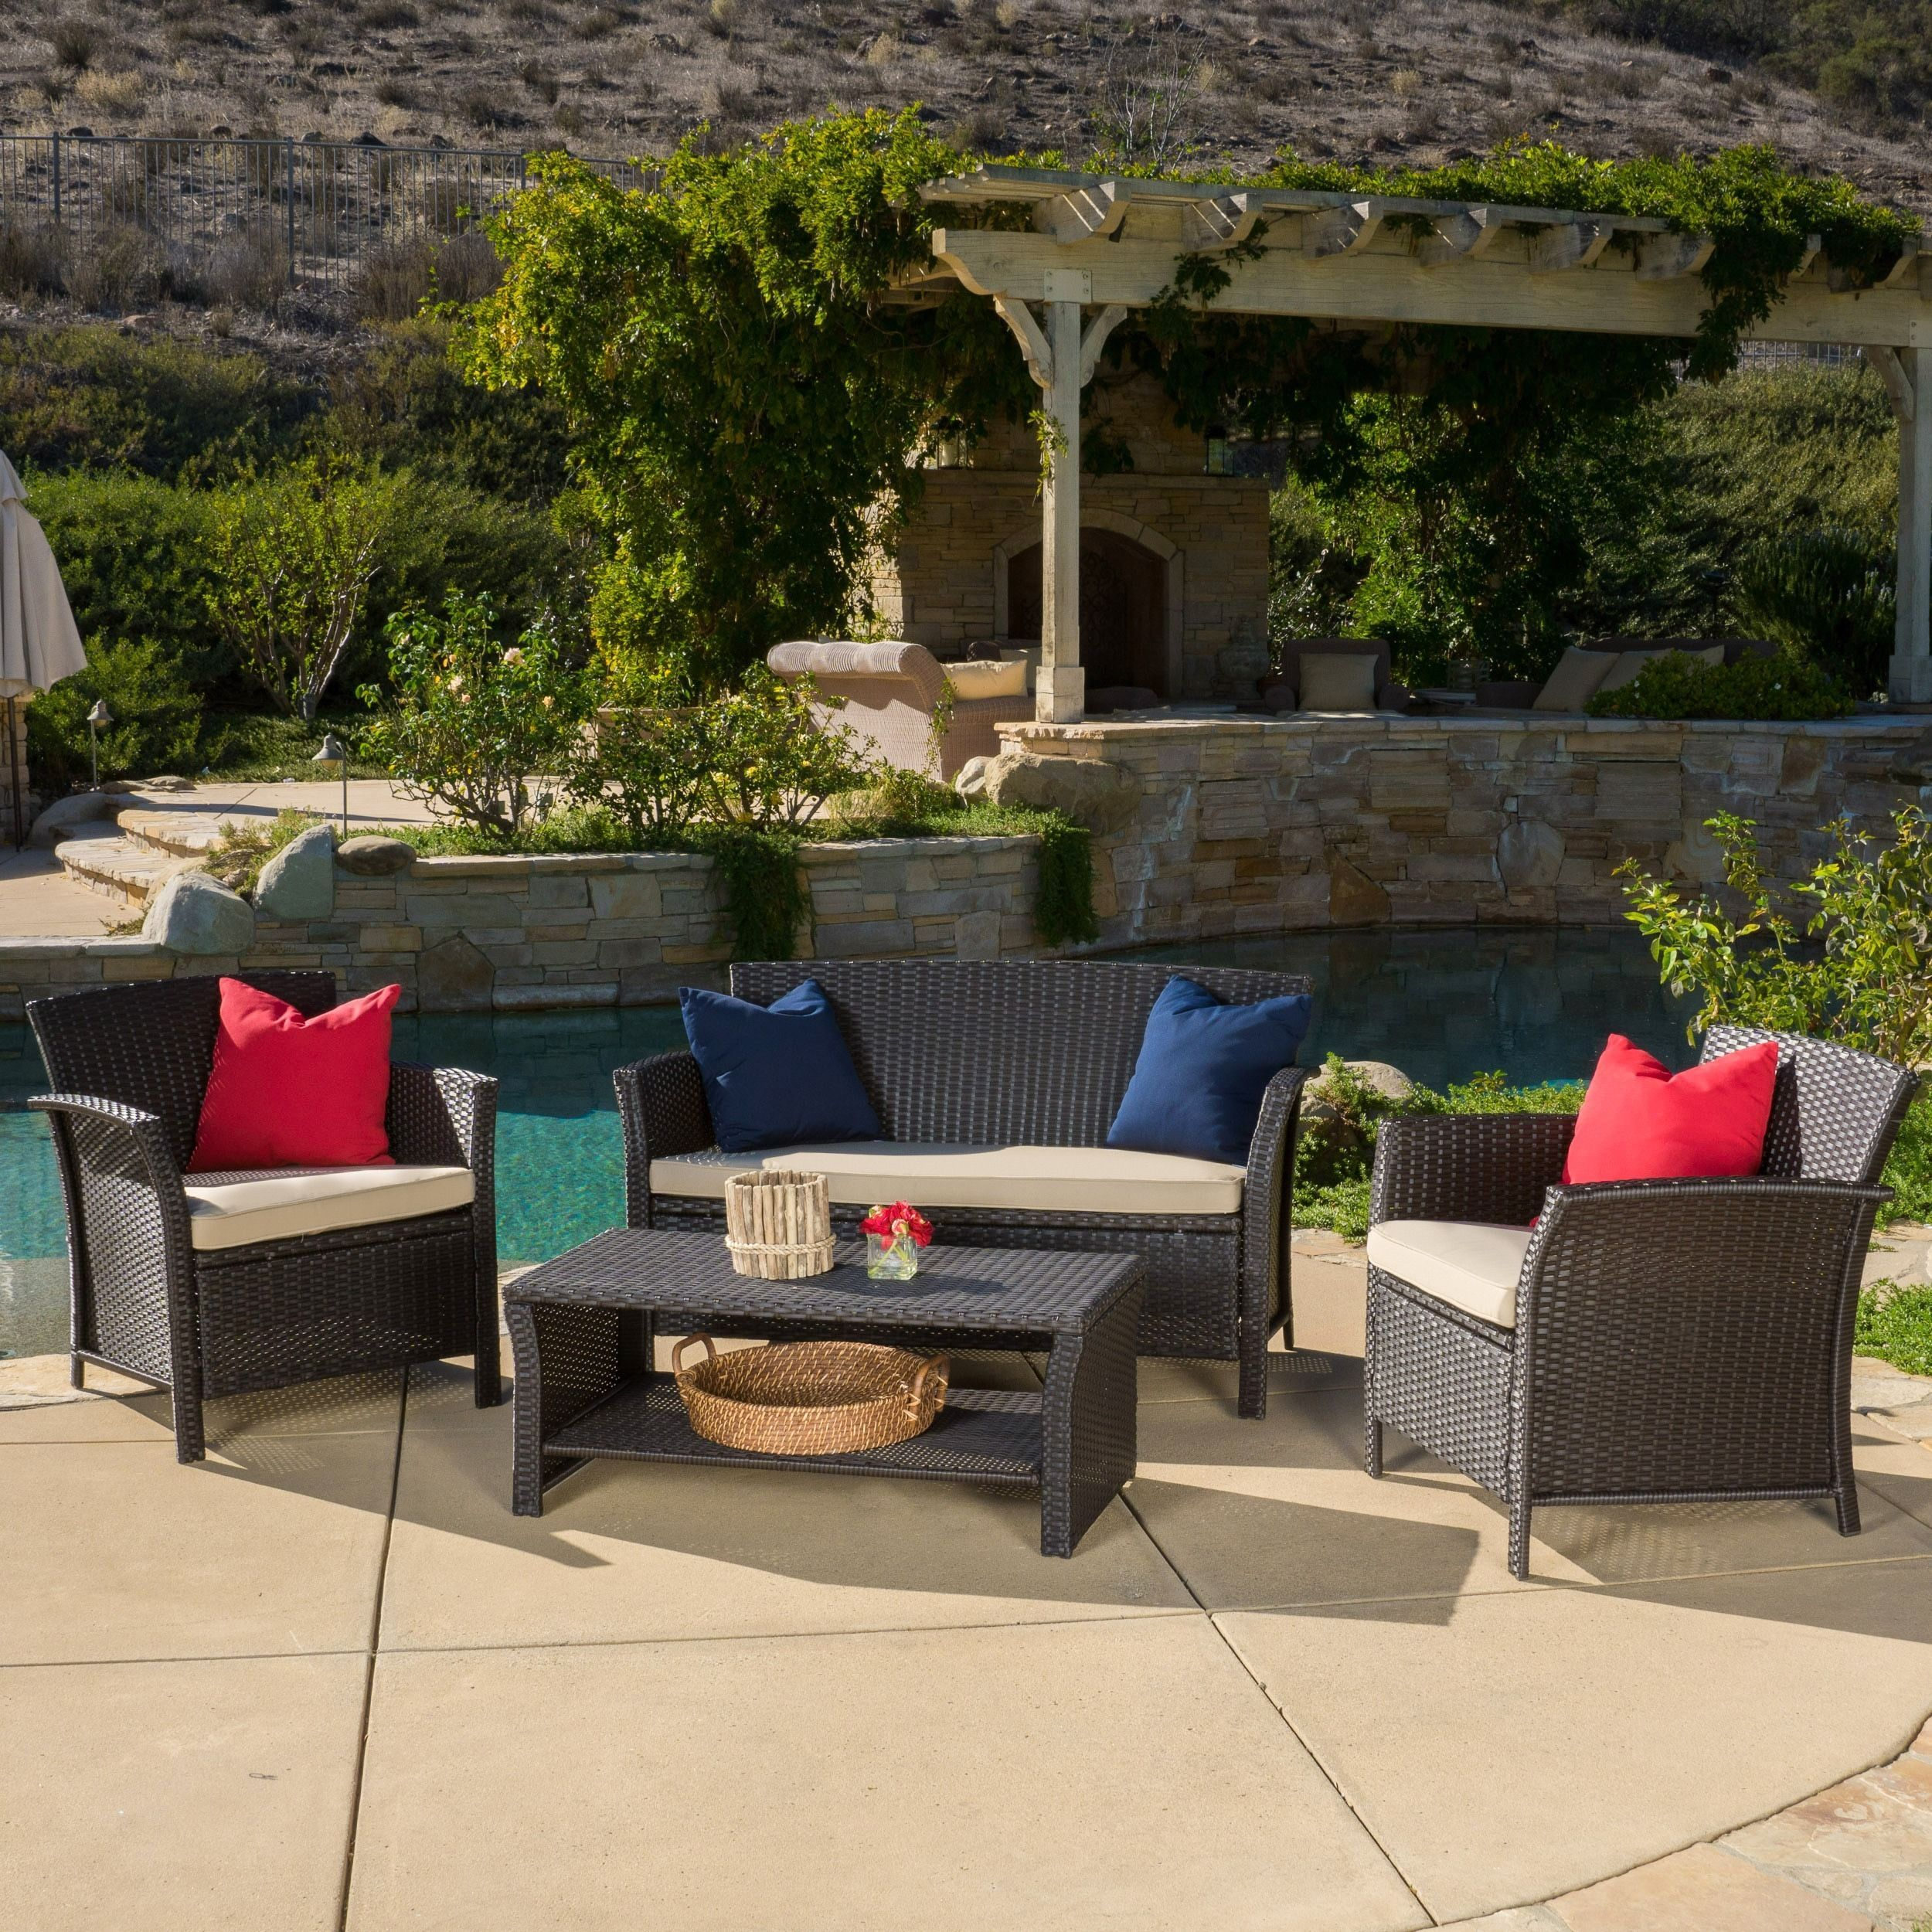 Patio Furniture Free Shipping On Orders Over 45 The Best Selection Of Outdoor